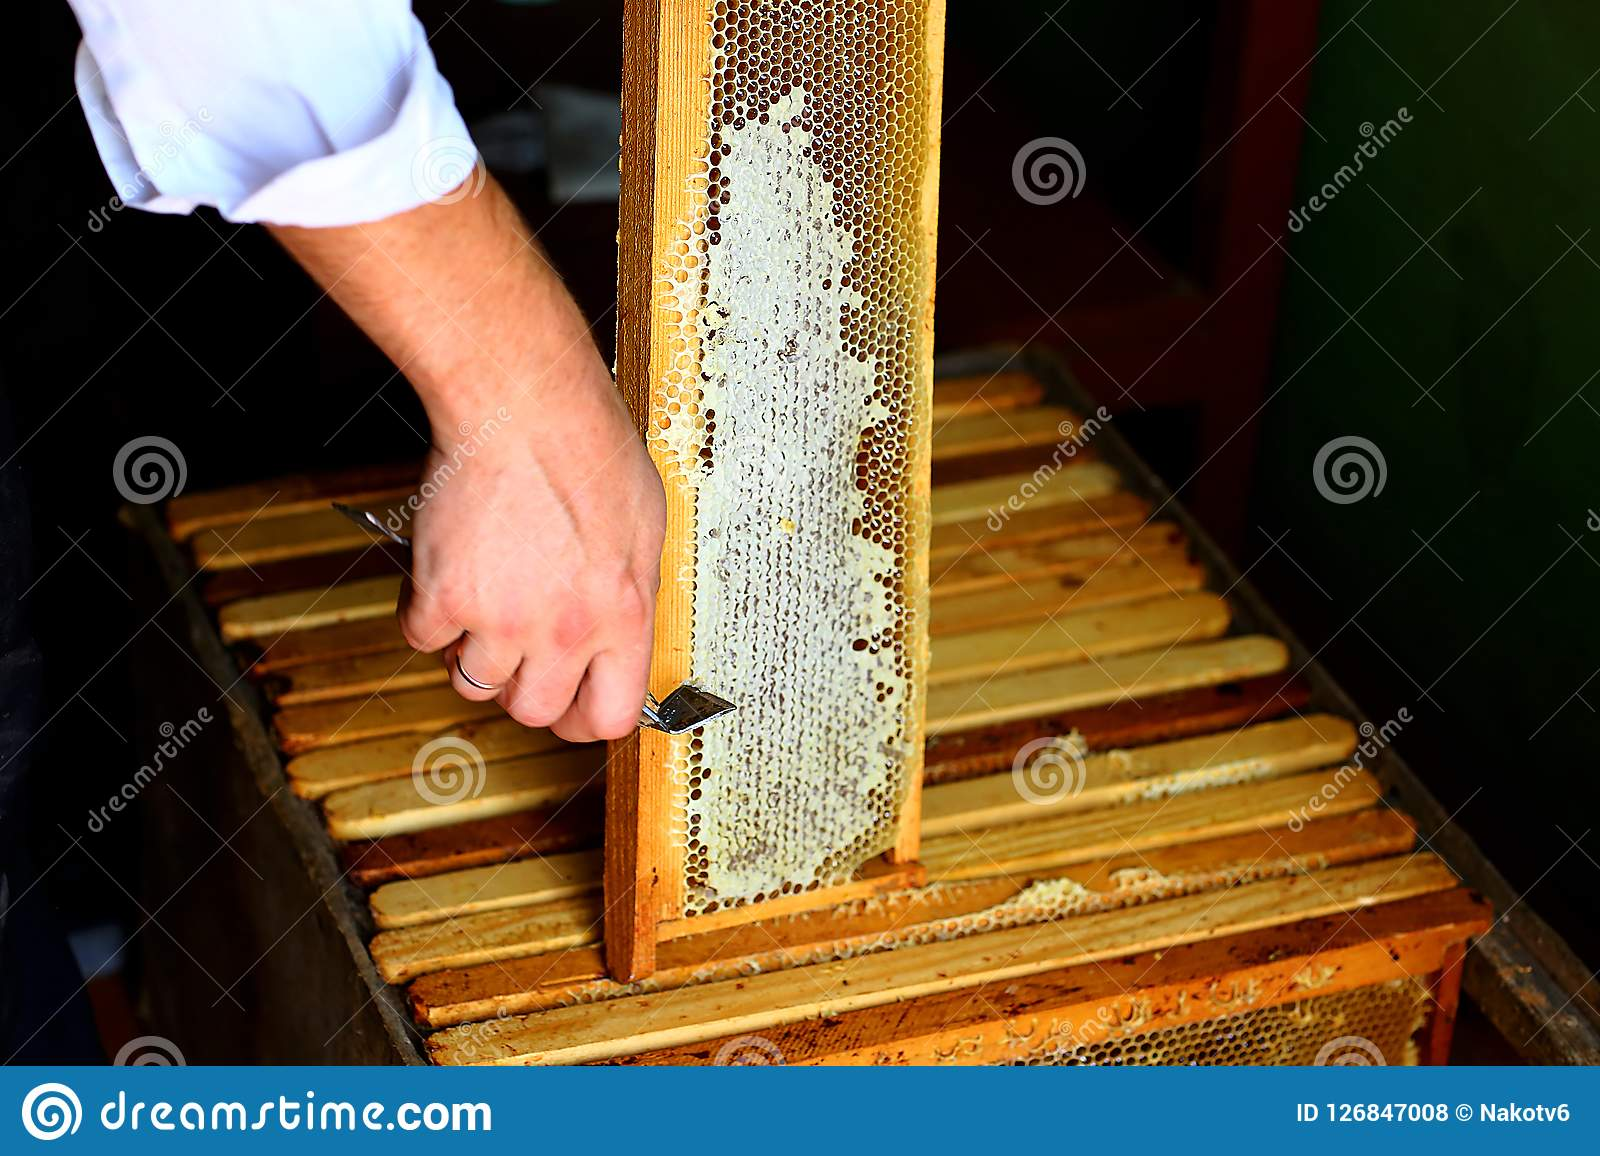 Frame with bees. honeycomb with uncapping fork. Raw honey being harvested from bee hives. Beekeeping concept. Authentic lifestyle